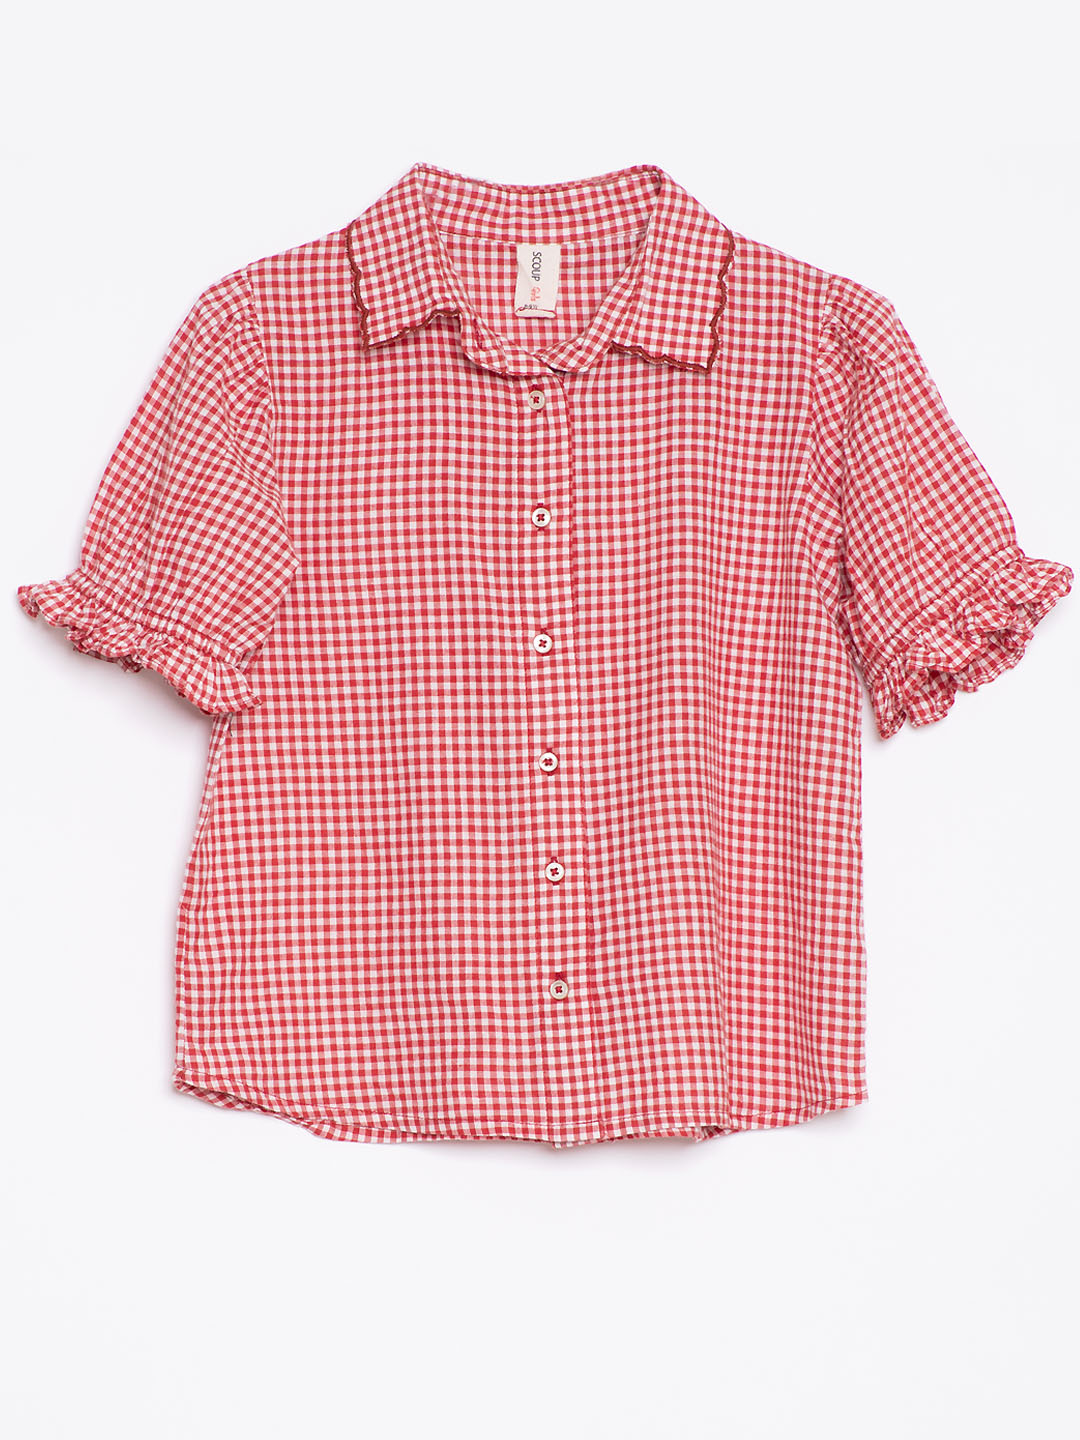 Check Embroidered shirt top with short sleeves